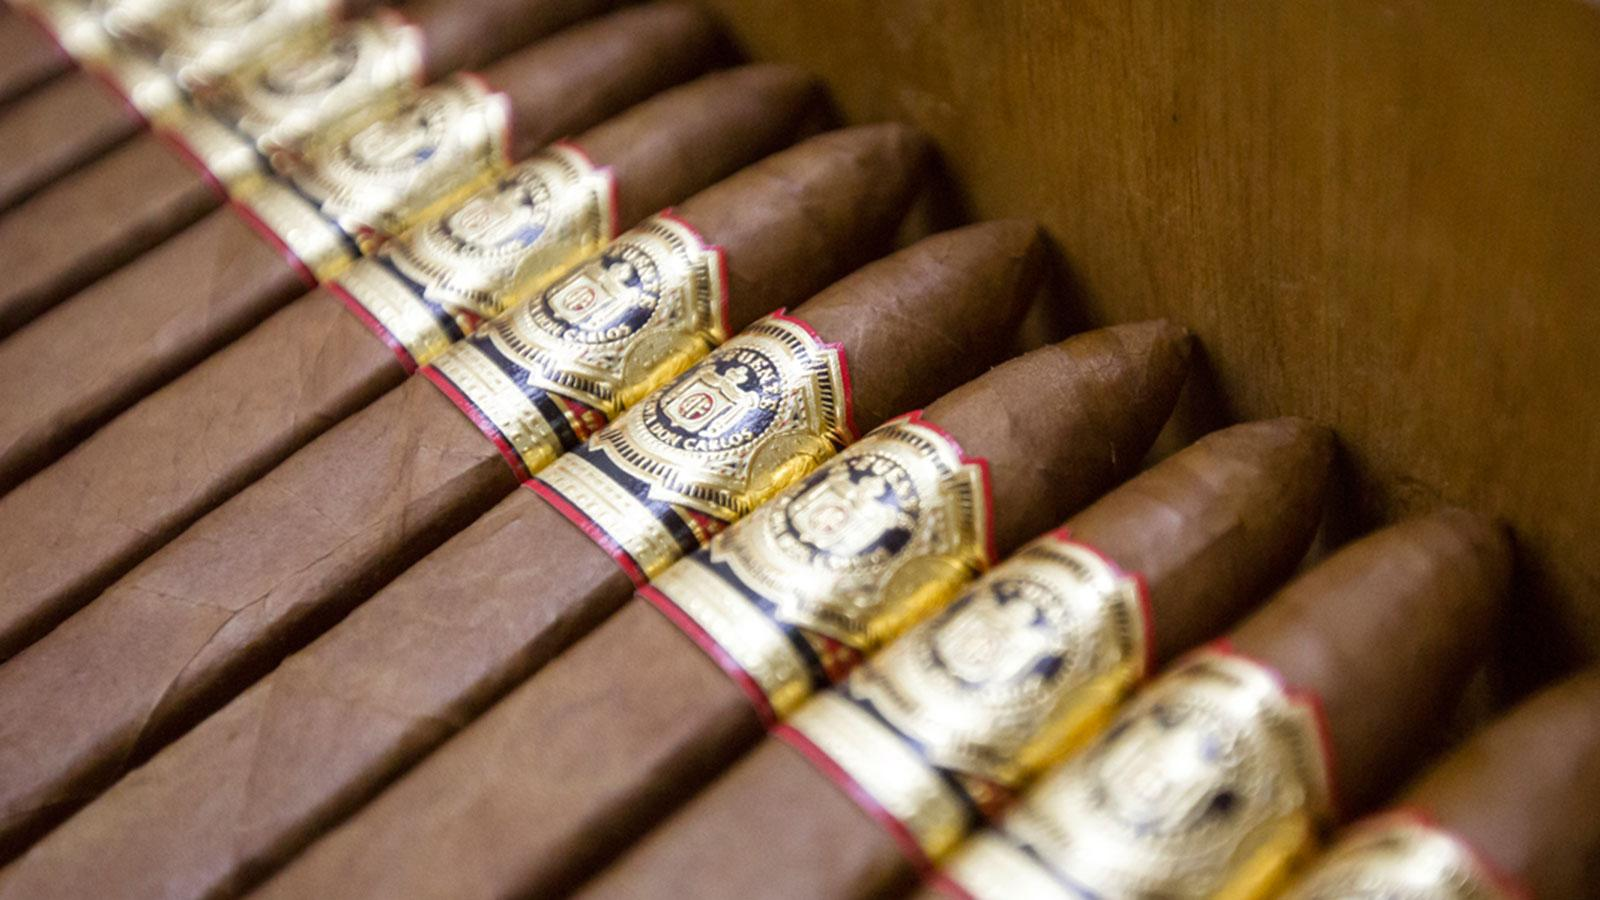 Carlos Fuente Sr. Makes His Private Blend Public